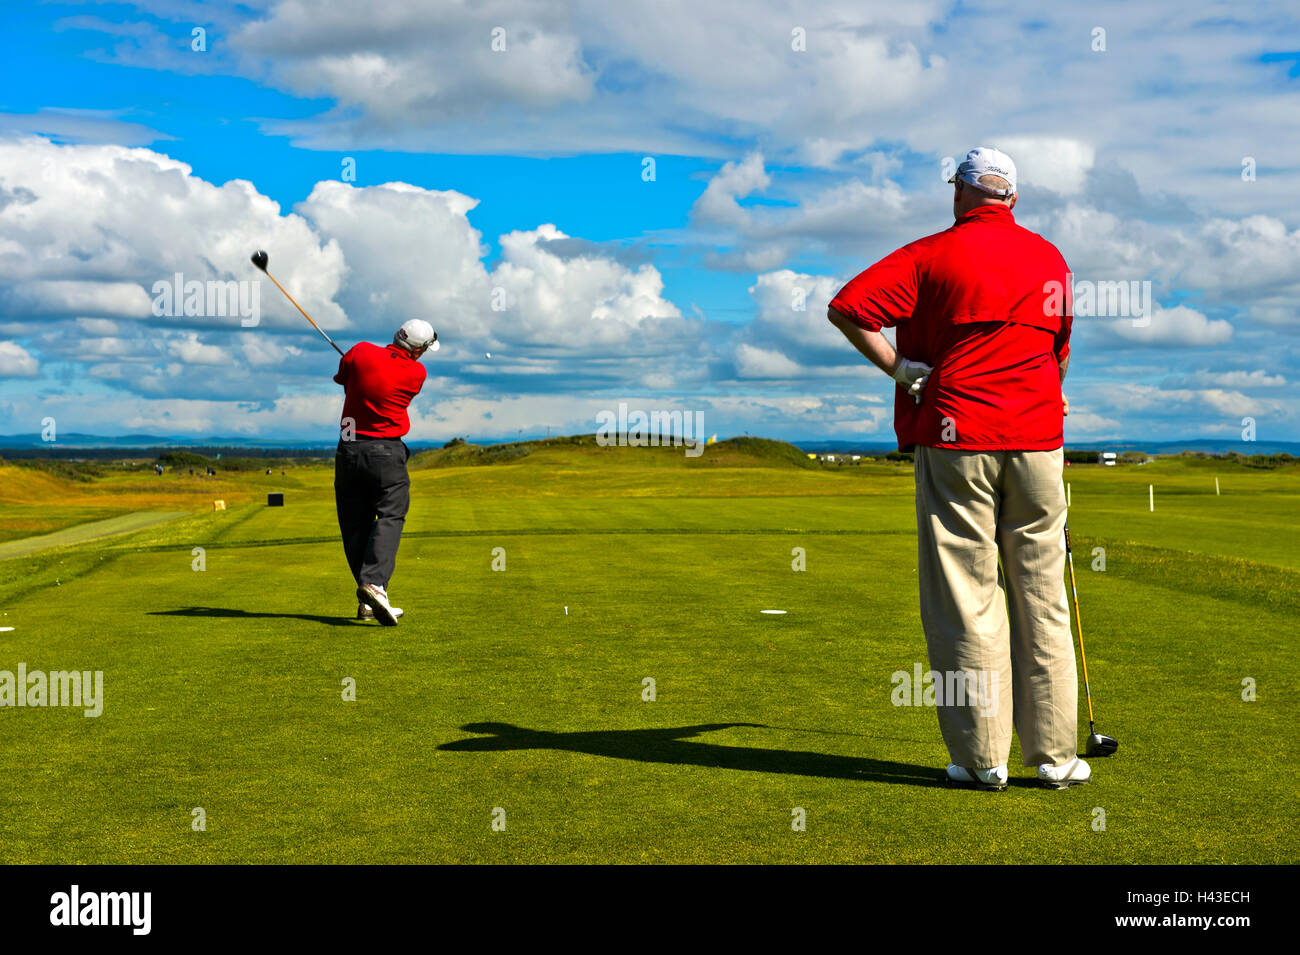 Two golfers teeing on the Jubilee Course, St Andrews Links, St Andrews, Fife, Scotland, United Kingdom - Stock Image